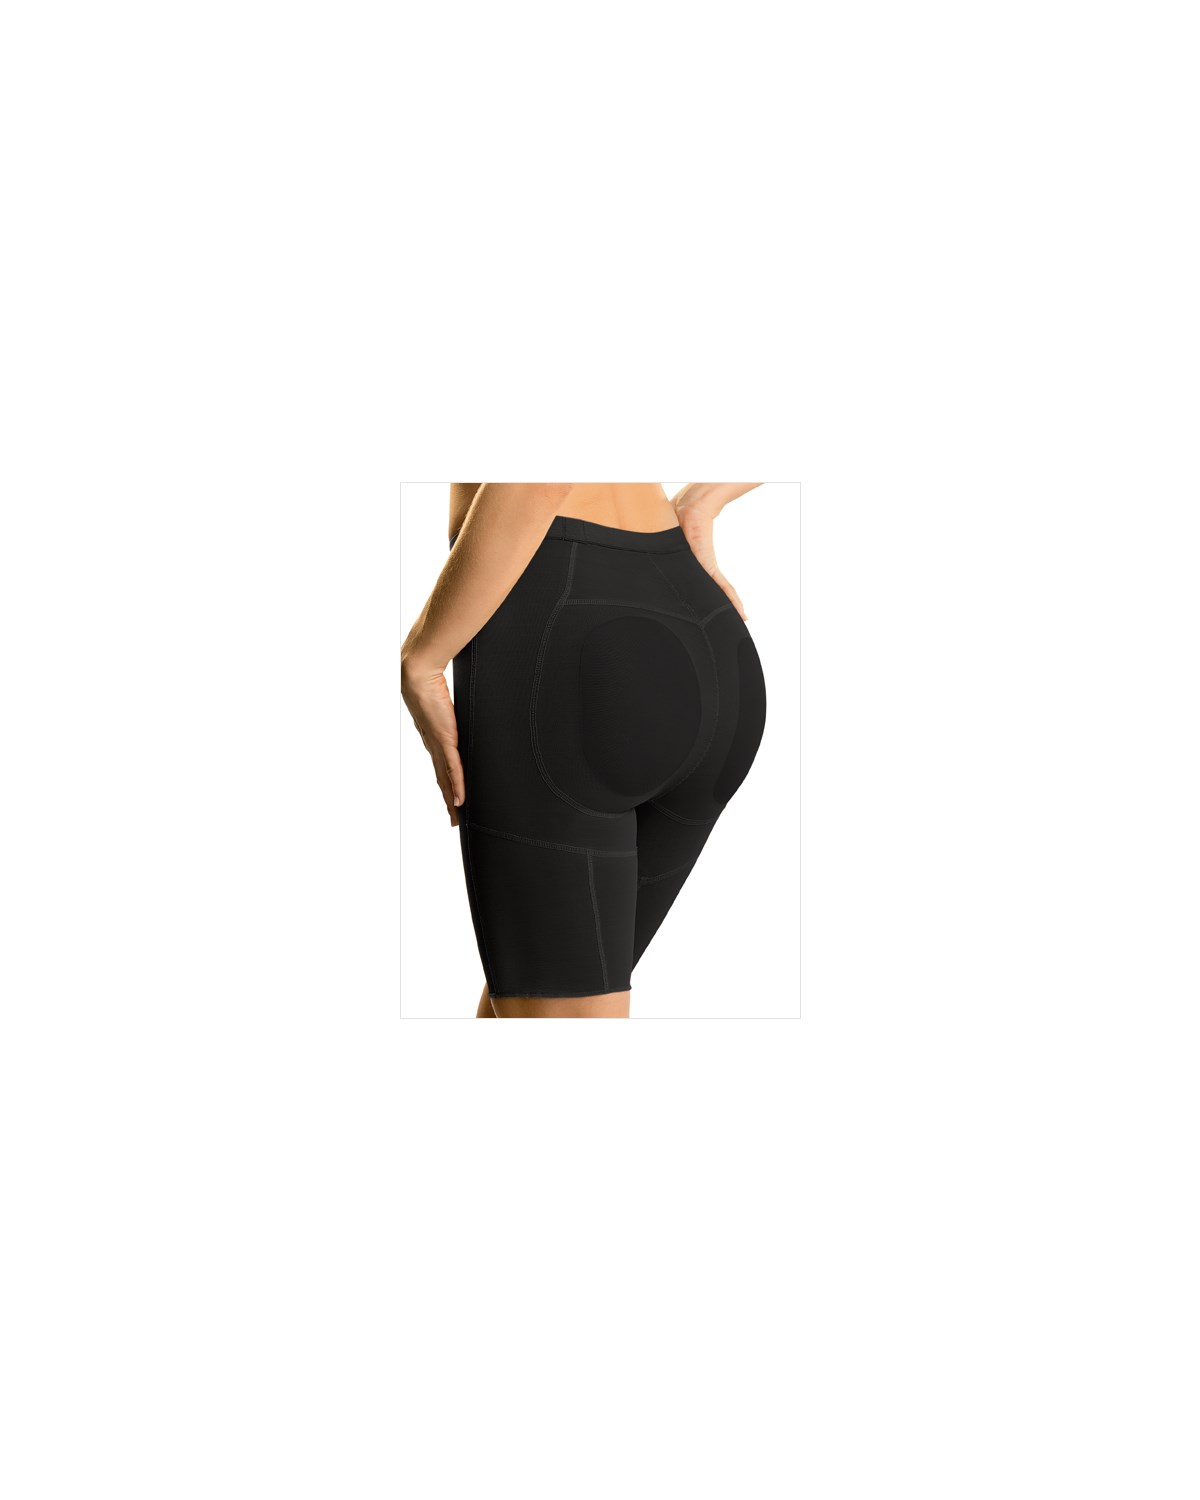 thigh slimming shaper short with butt lifter-700- Black-MainImage